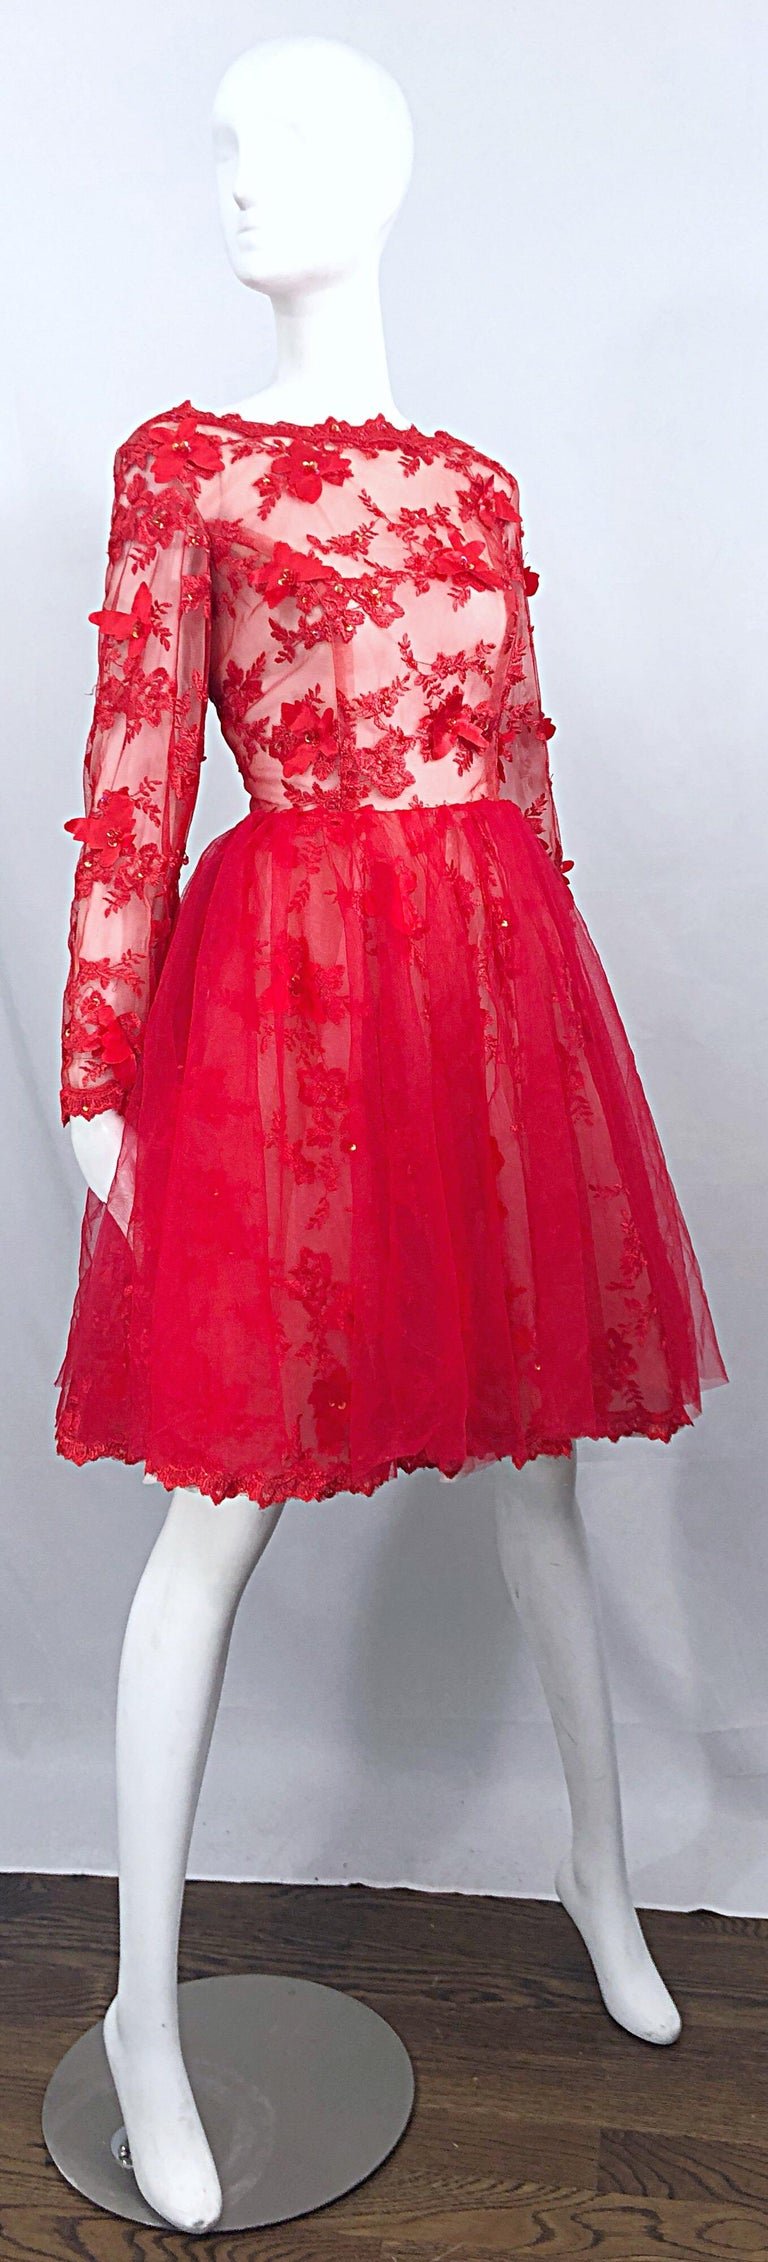 Vintage Couture 1990s Does 1950s Semi Sheer Sz 10 / 12 Lipstick Red Sequin Dress For Sale 10